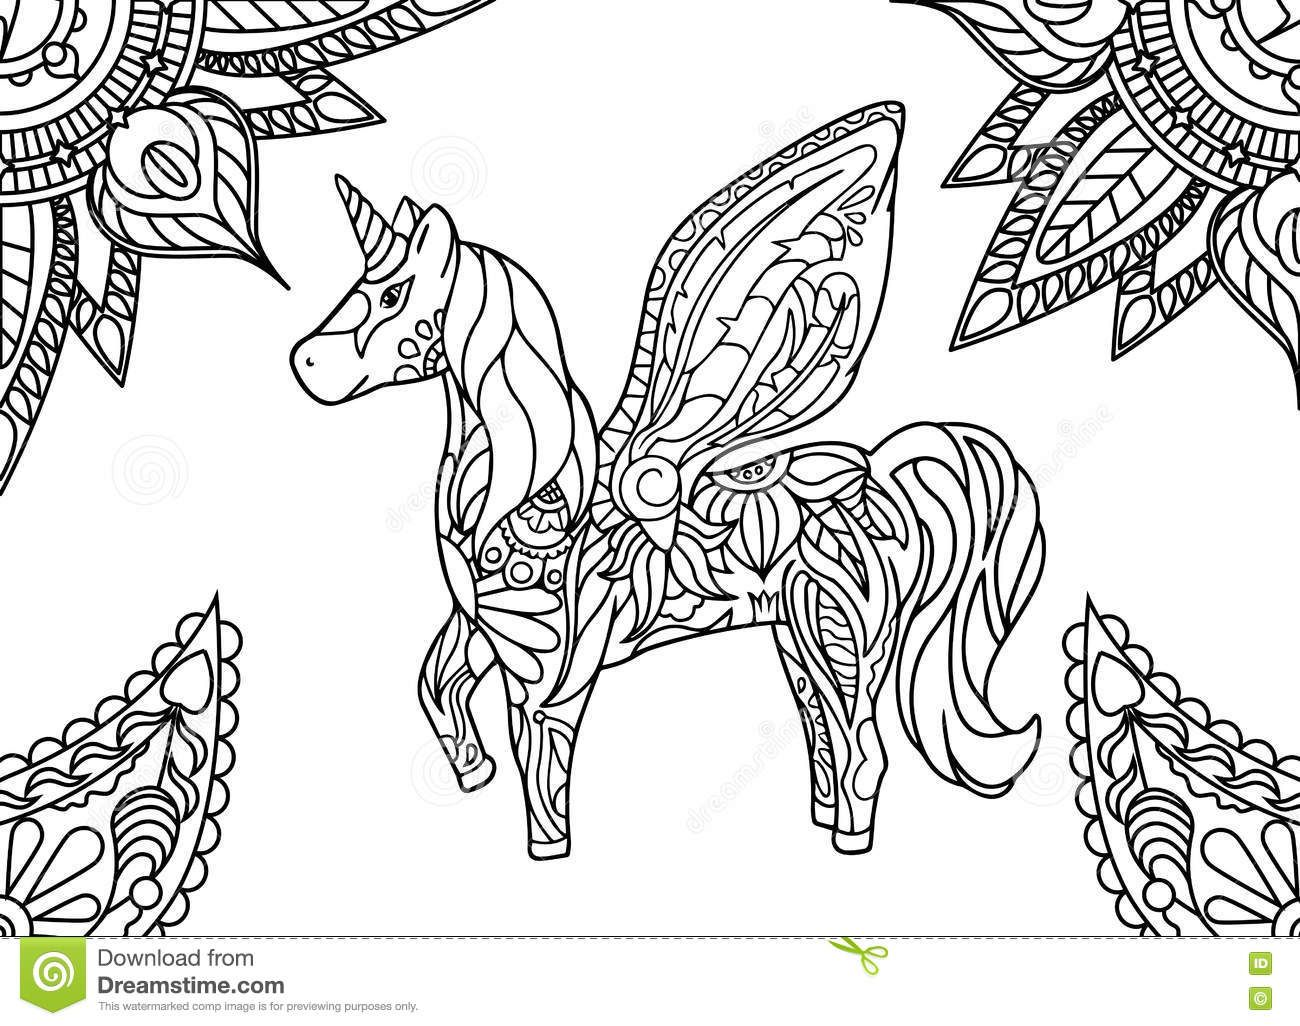 Pin By Cintia Daflon On Coloring Horse Zebra Horse Coloring Pages Unicorn Coloring Pages Mandala Coloring Pages